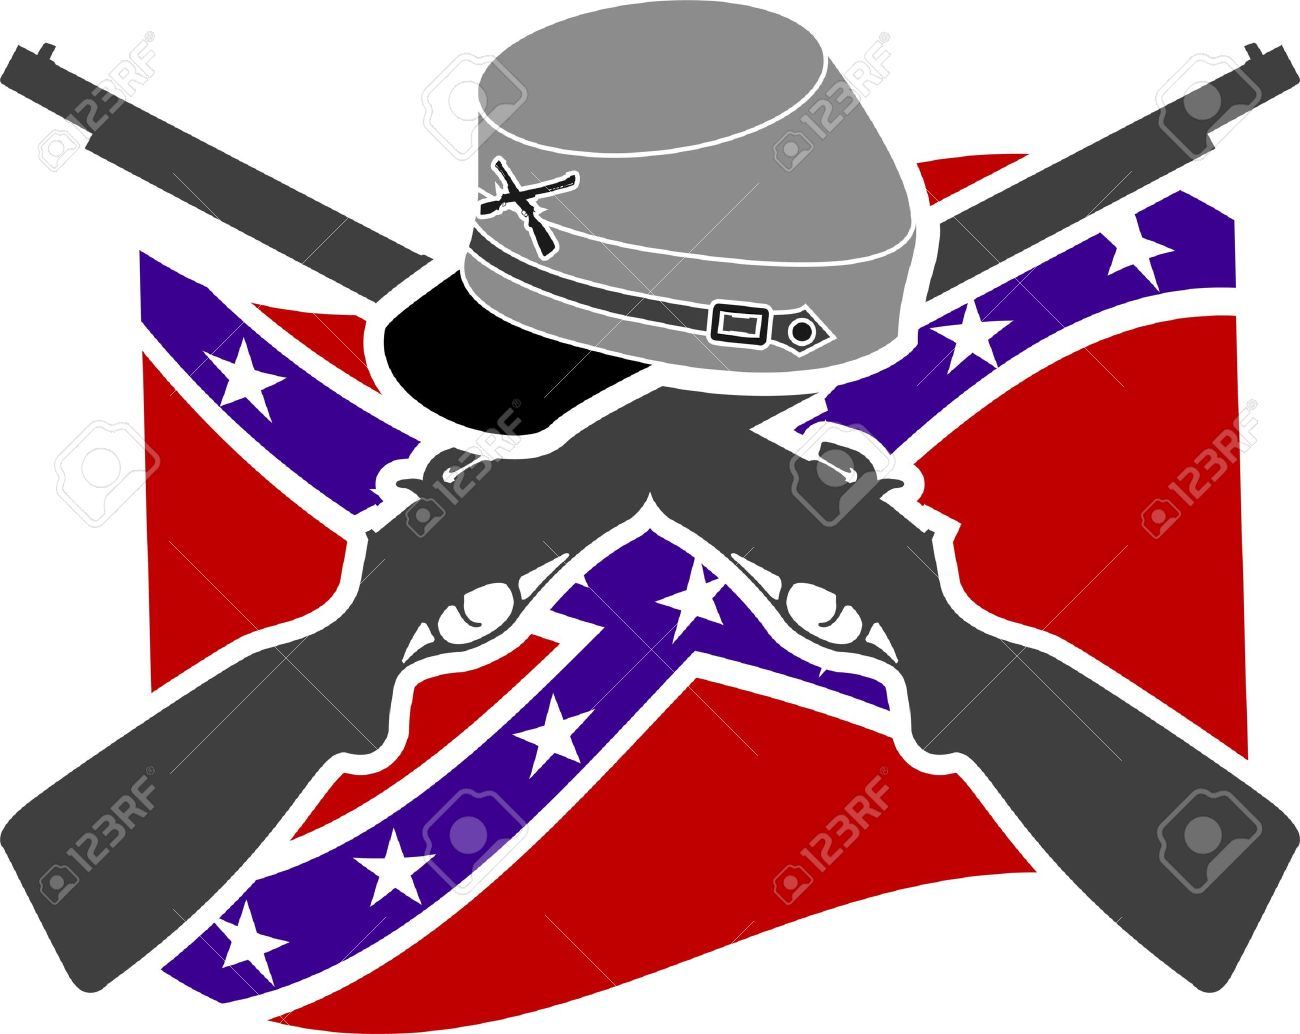 american civil war confederacy stencil royalty free cliparts rh 123rf com clipart confederate flag Confederate Soldier Drawing